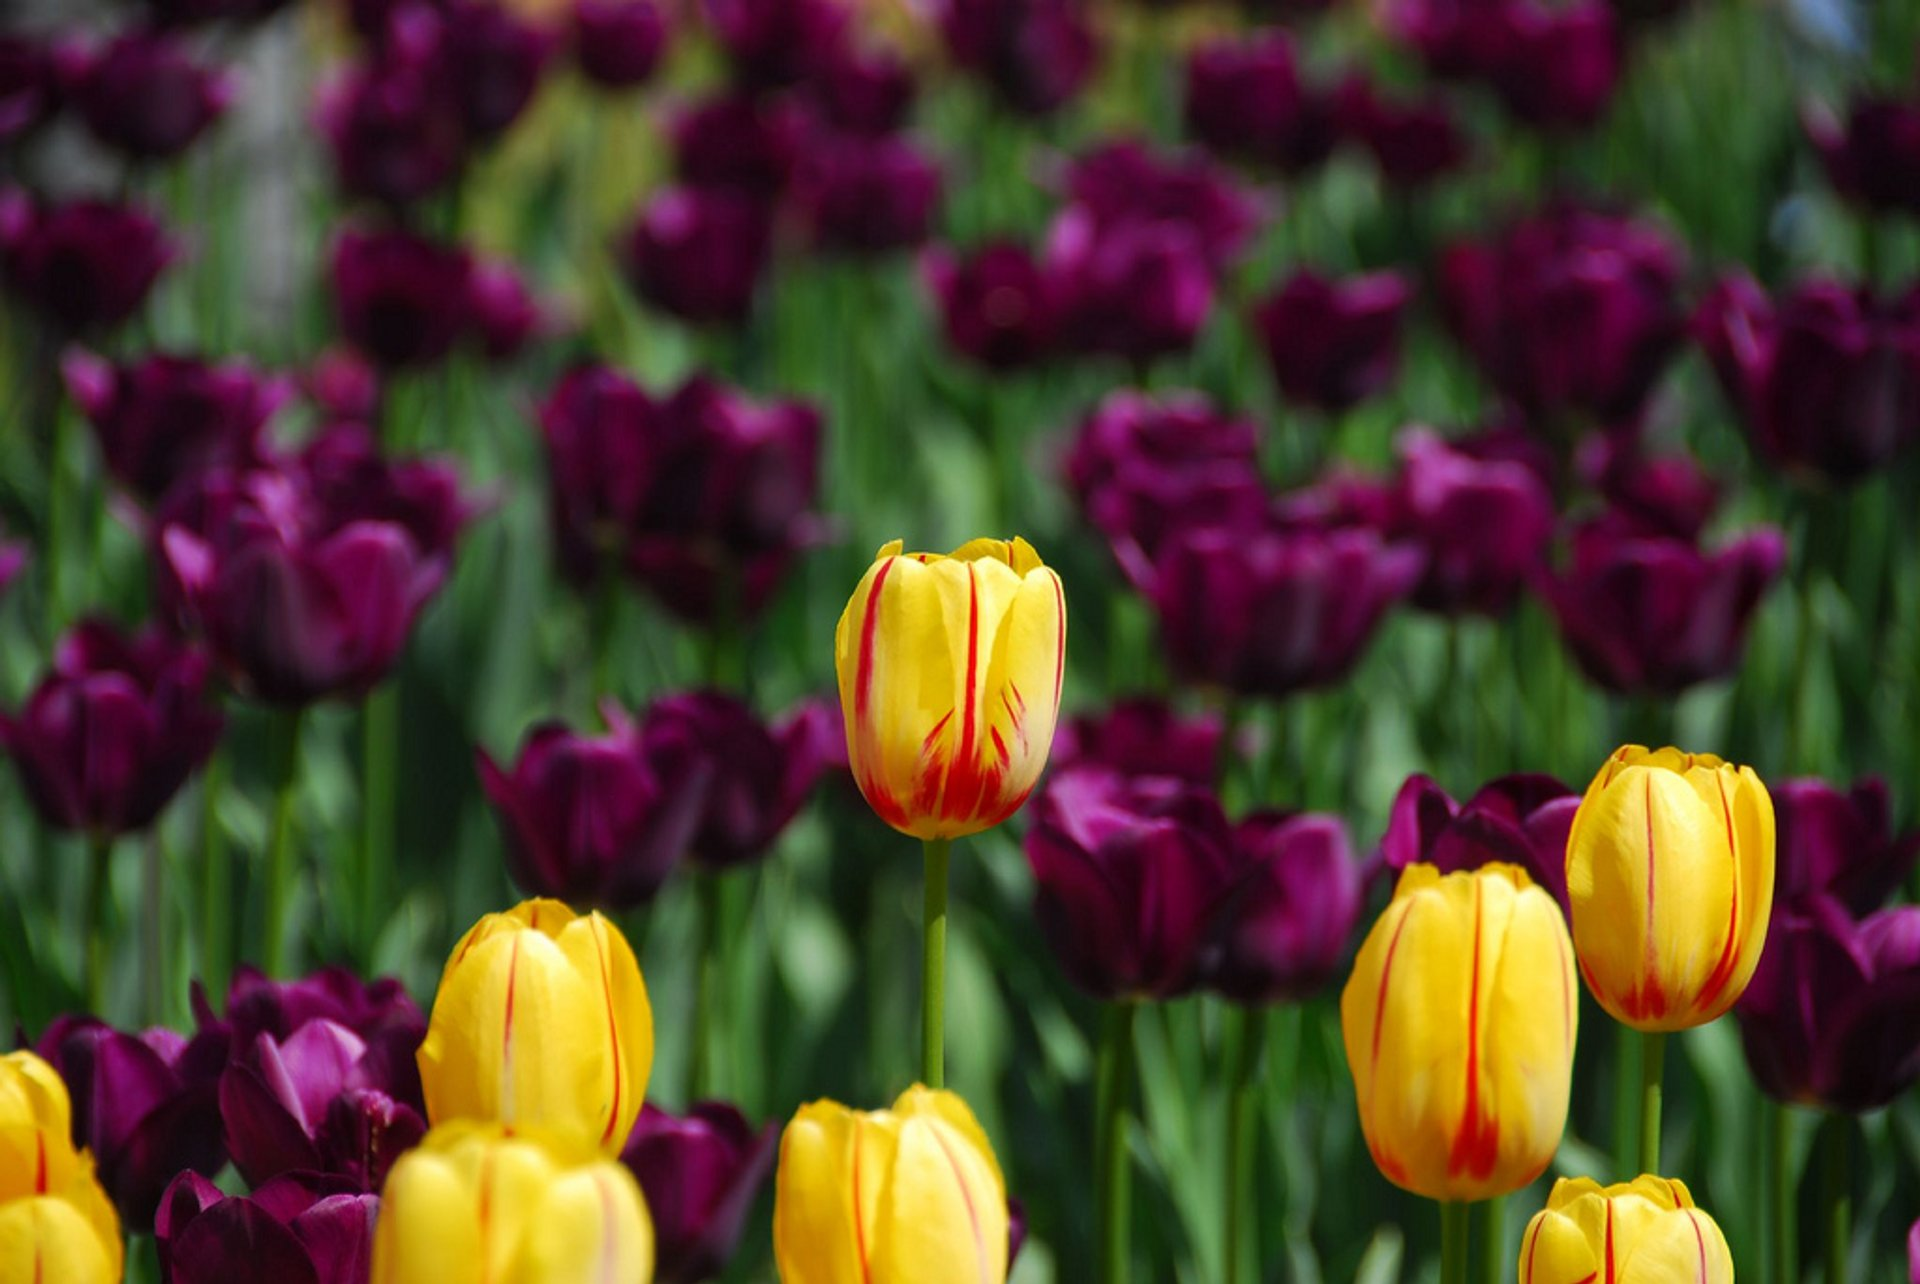 Canadian Tulip Festival (Festival Canadien des Tulipes) in Ottawa - Best Season 2020